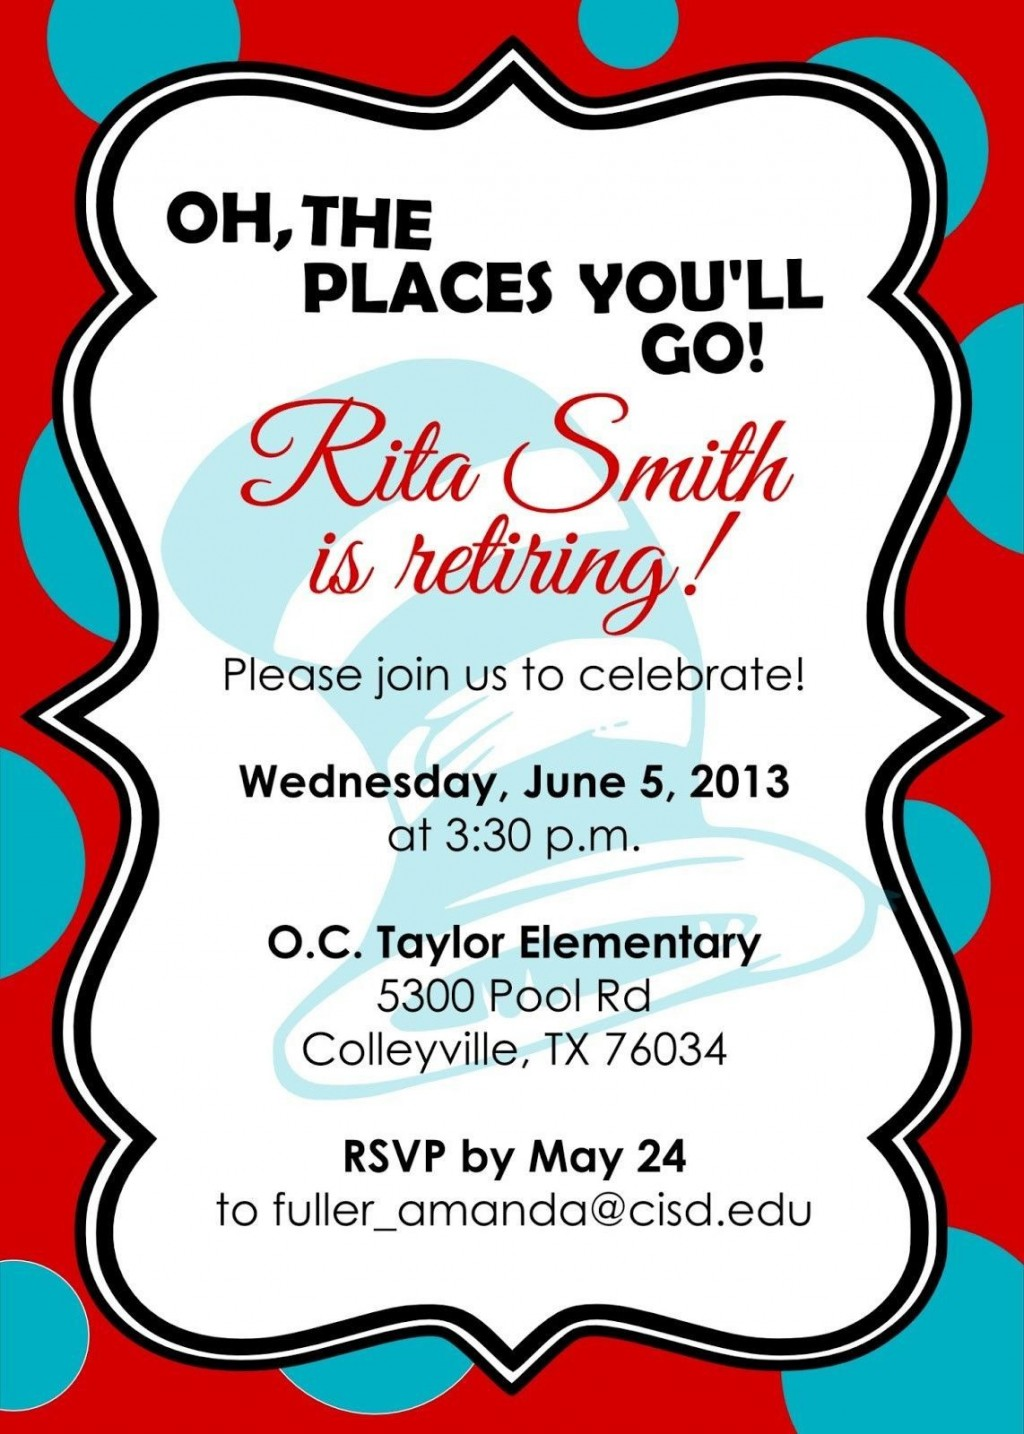 007 Incredible Retirement Party Invite Template Word Free Picture Large